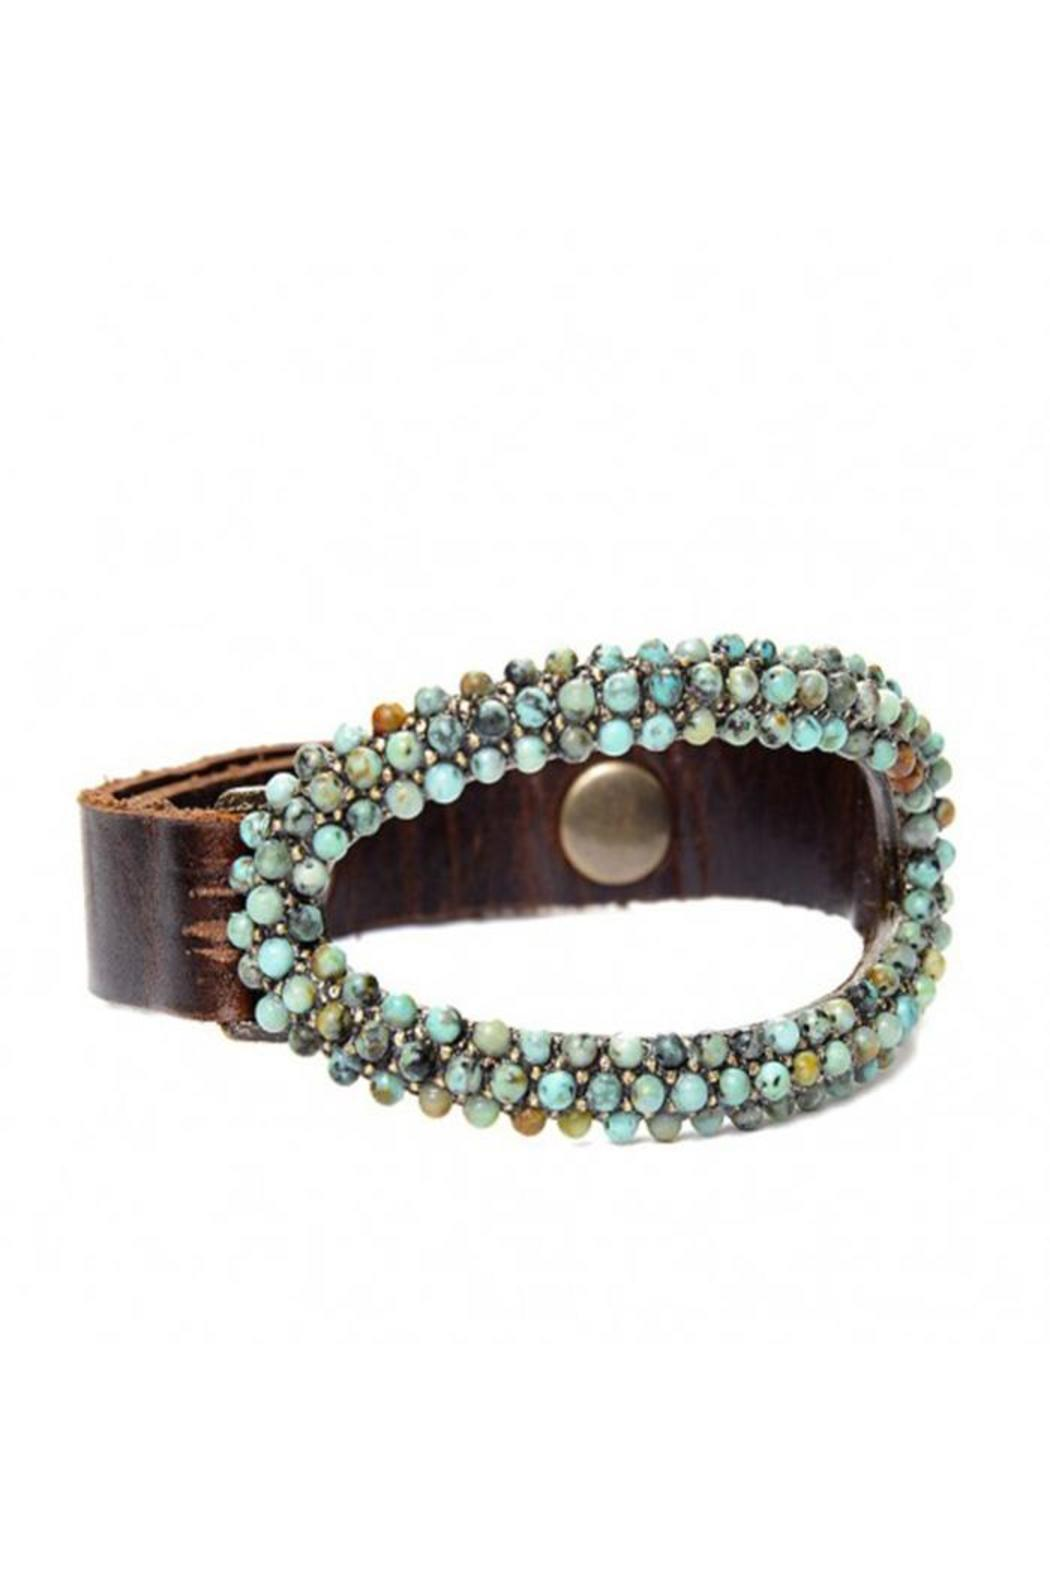 Rebel designs leather crystal bracelet from canada by for Rebel designs jewelry sale